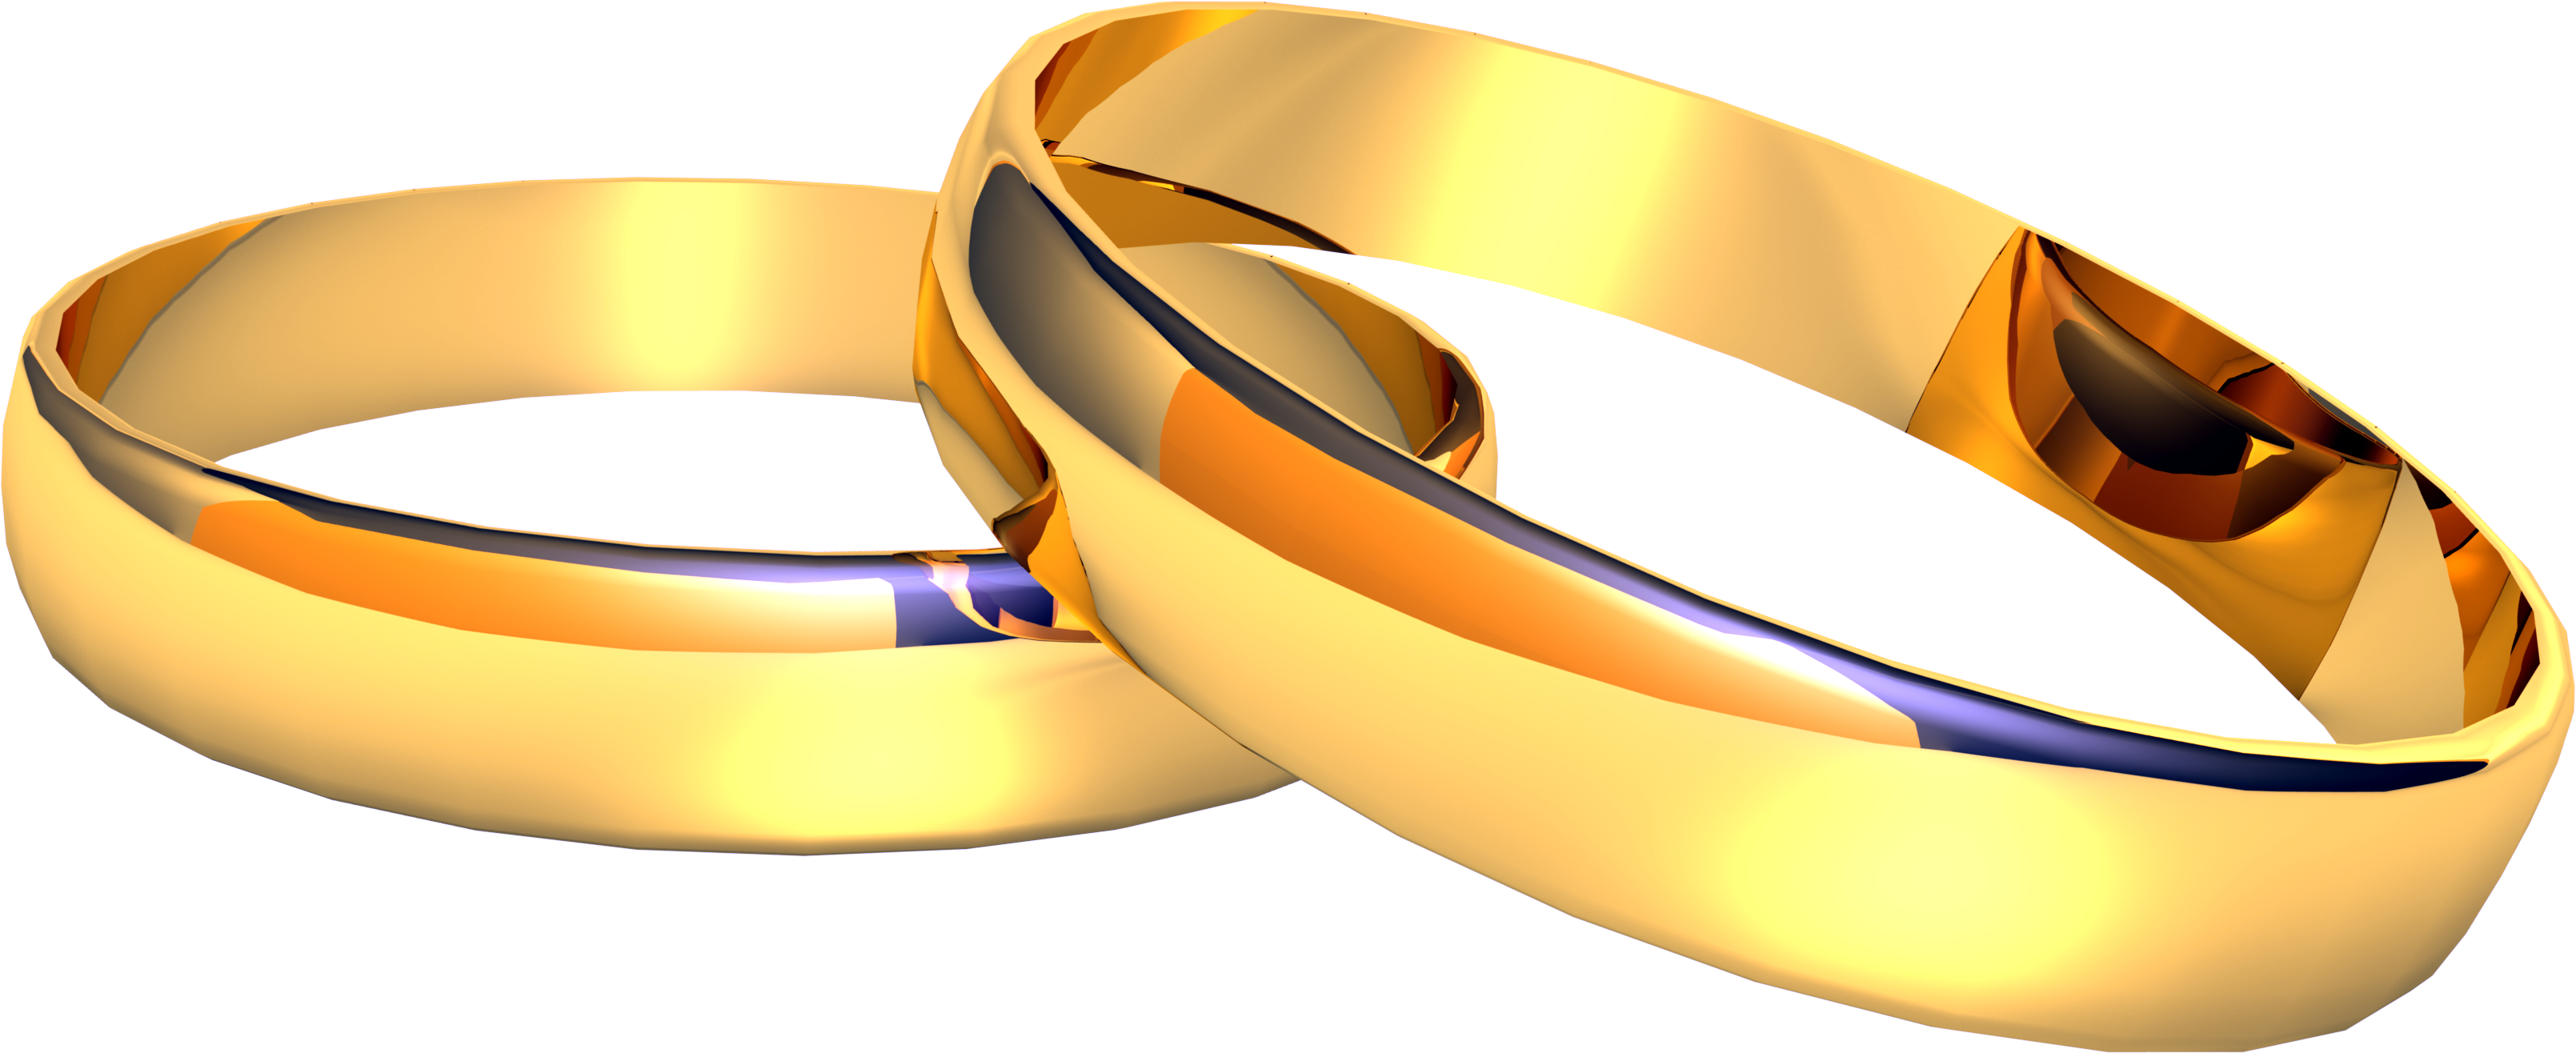 Wedding golden rings PNG imag